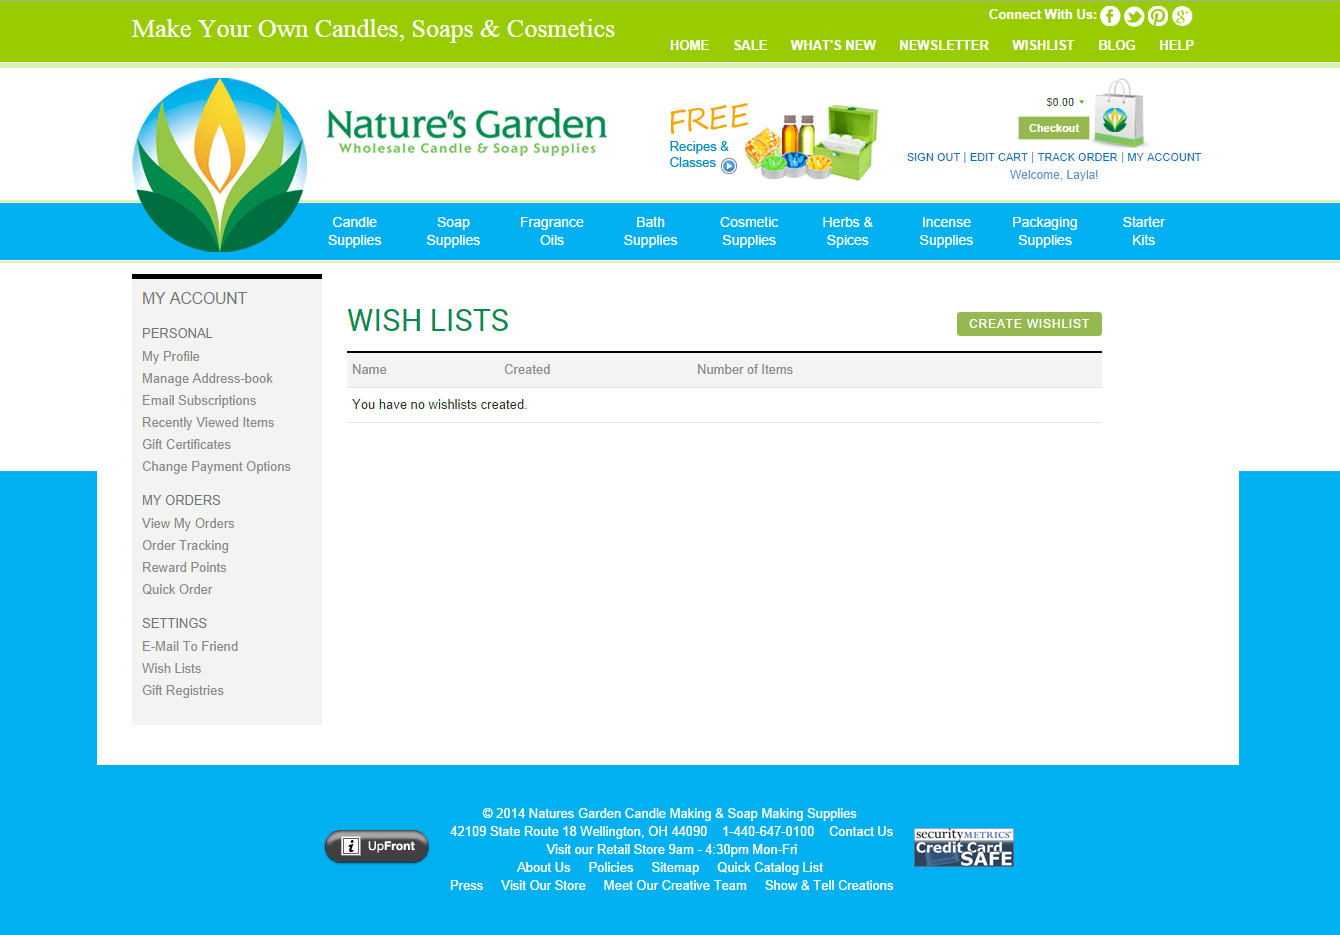 wishlists page on ng site - Natures Garden Candles